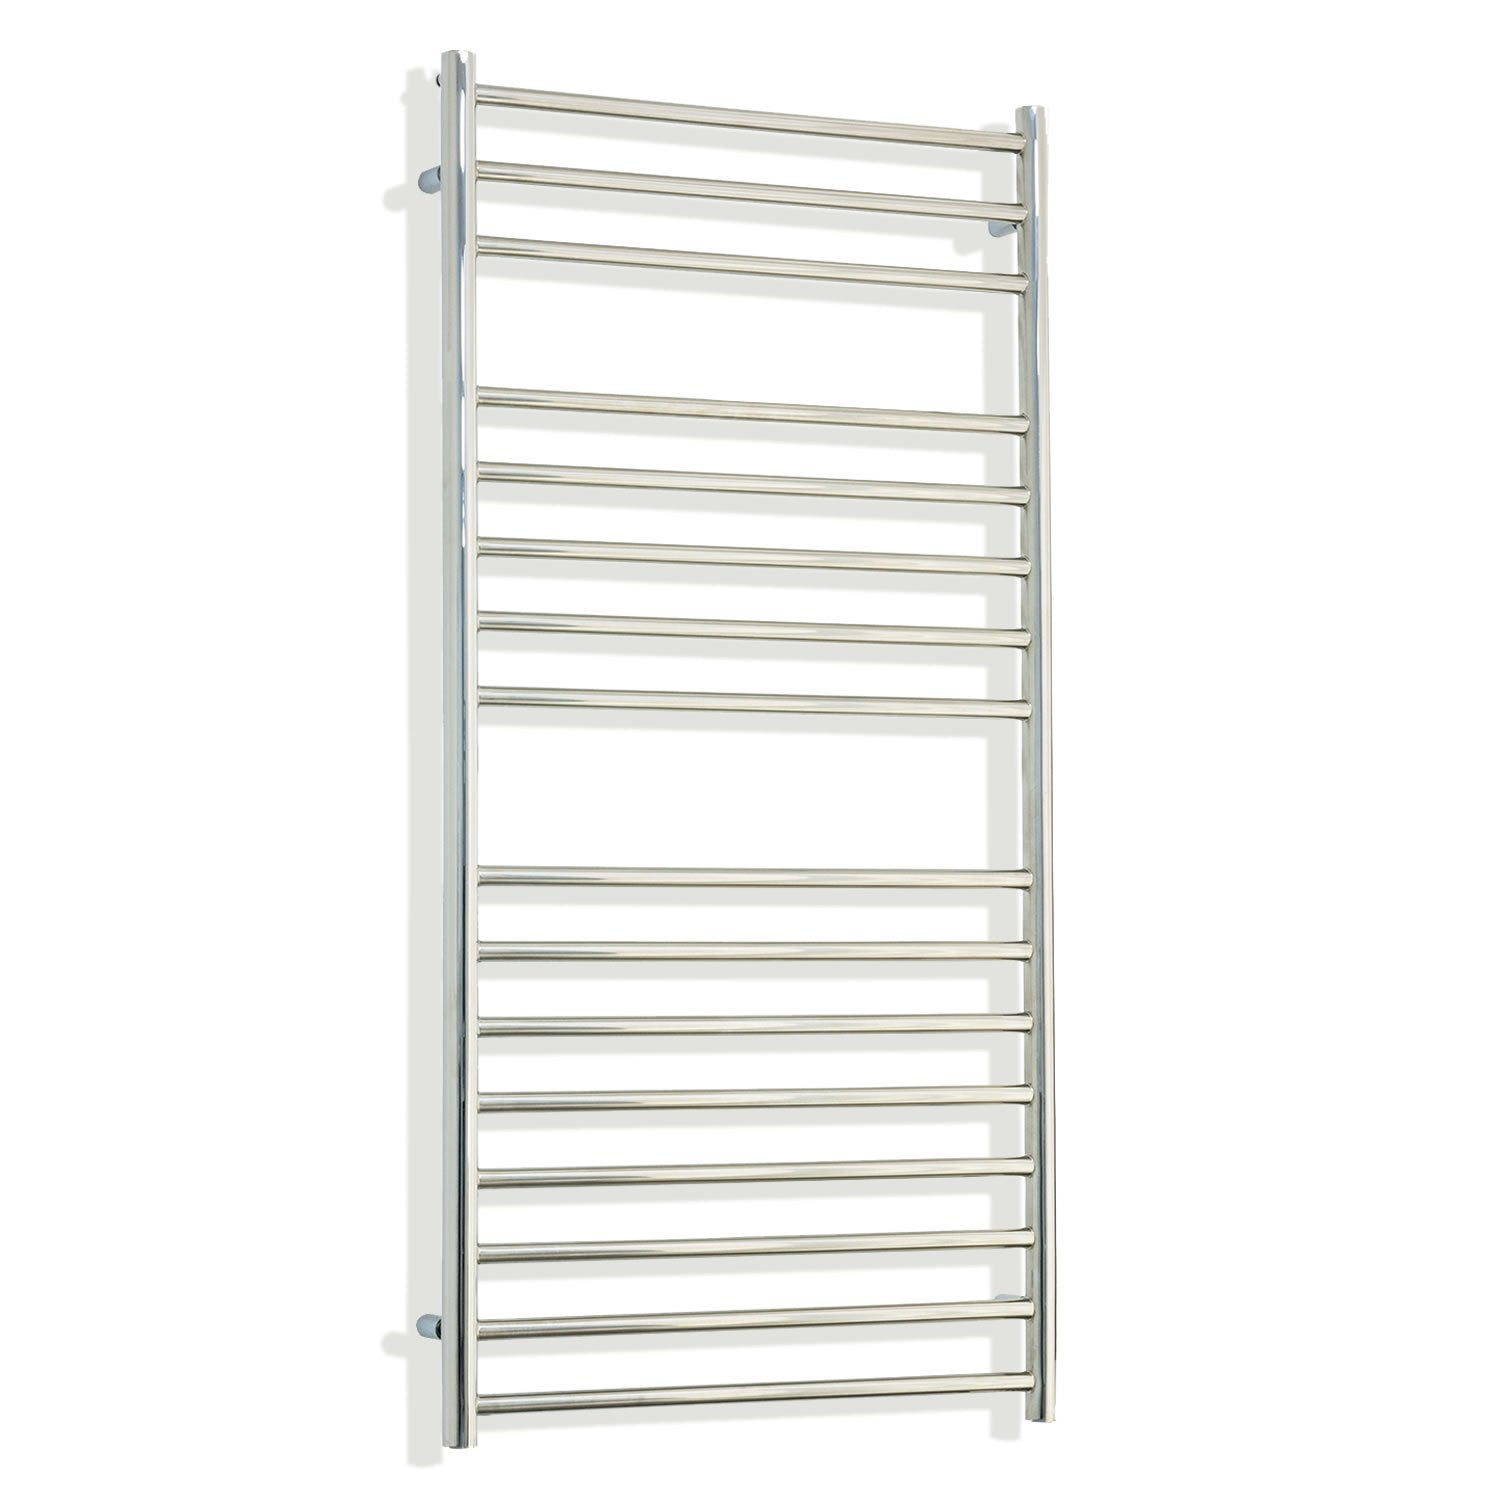 600mm Wide 1200mm High Stainless Steel Polished Heated Flat Towel Rail Radiator Central heating,Without Valves